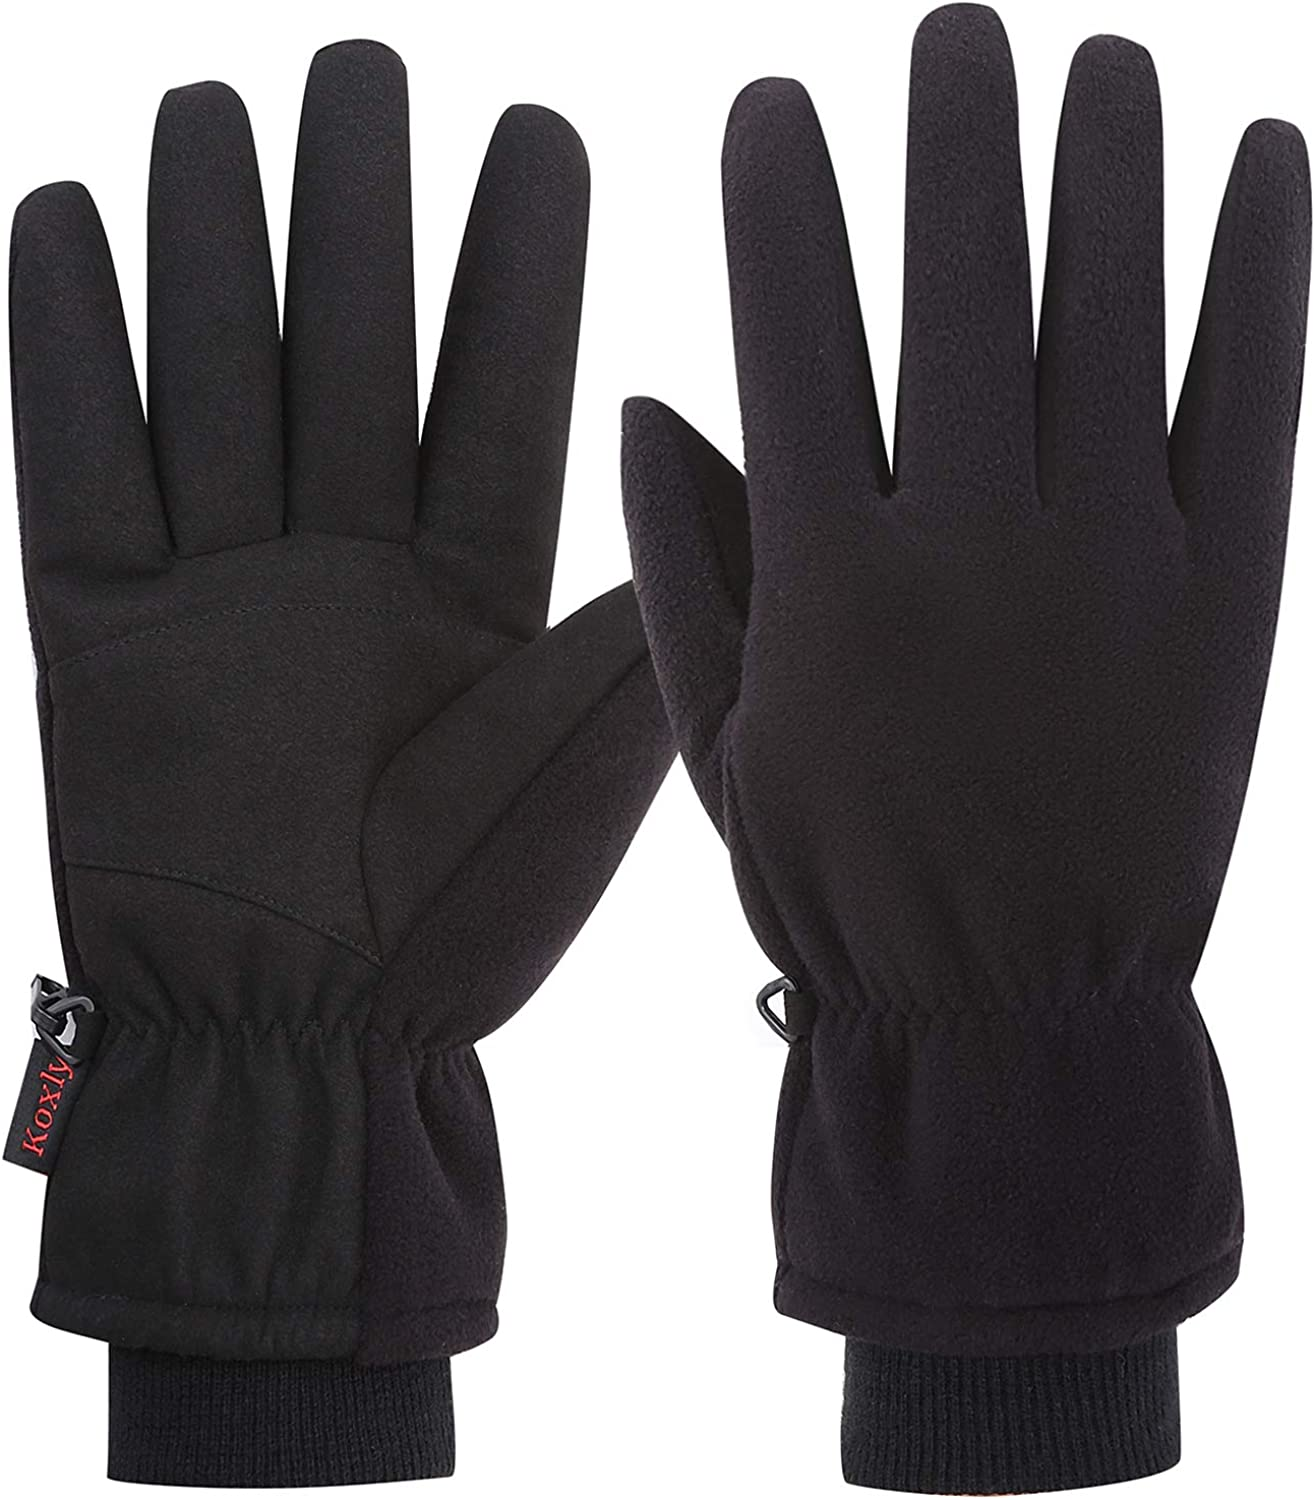 Koxly Winter Gloves Waterproof Windproof Insulated Warm Gifts Cycling Running Work Cold Weather for Men Women Mens Womens